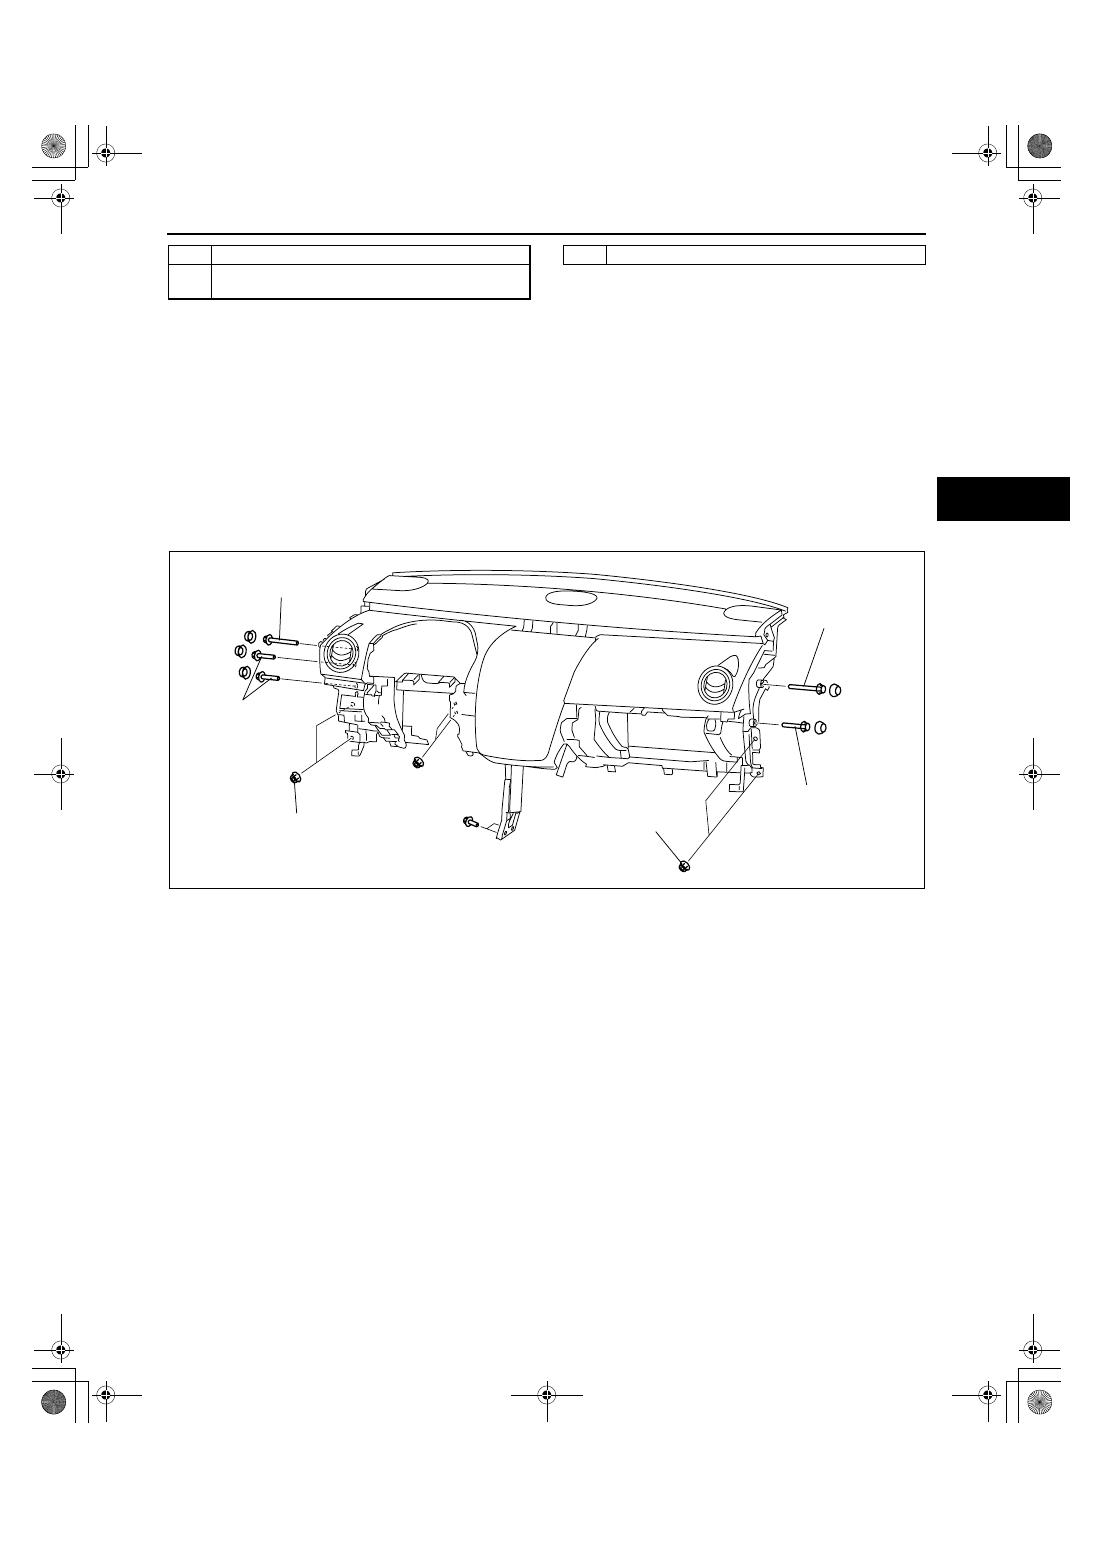 Mazda 3 Service Manual: Lower Panel RemovalInstallation